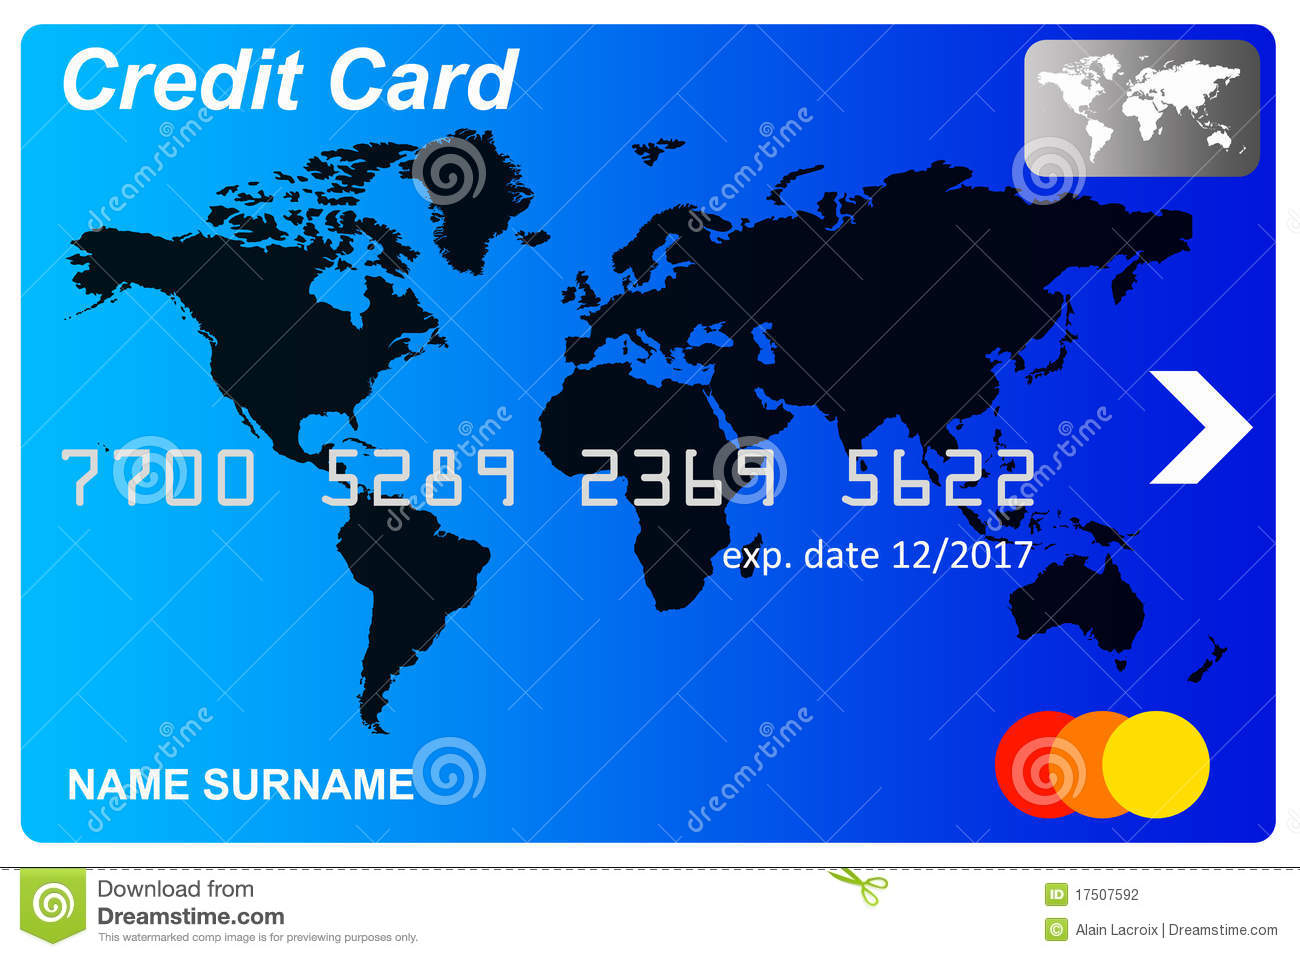 No Credit Cards with Expiry Date